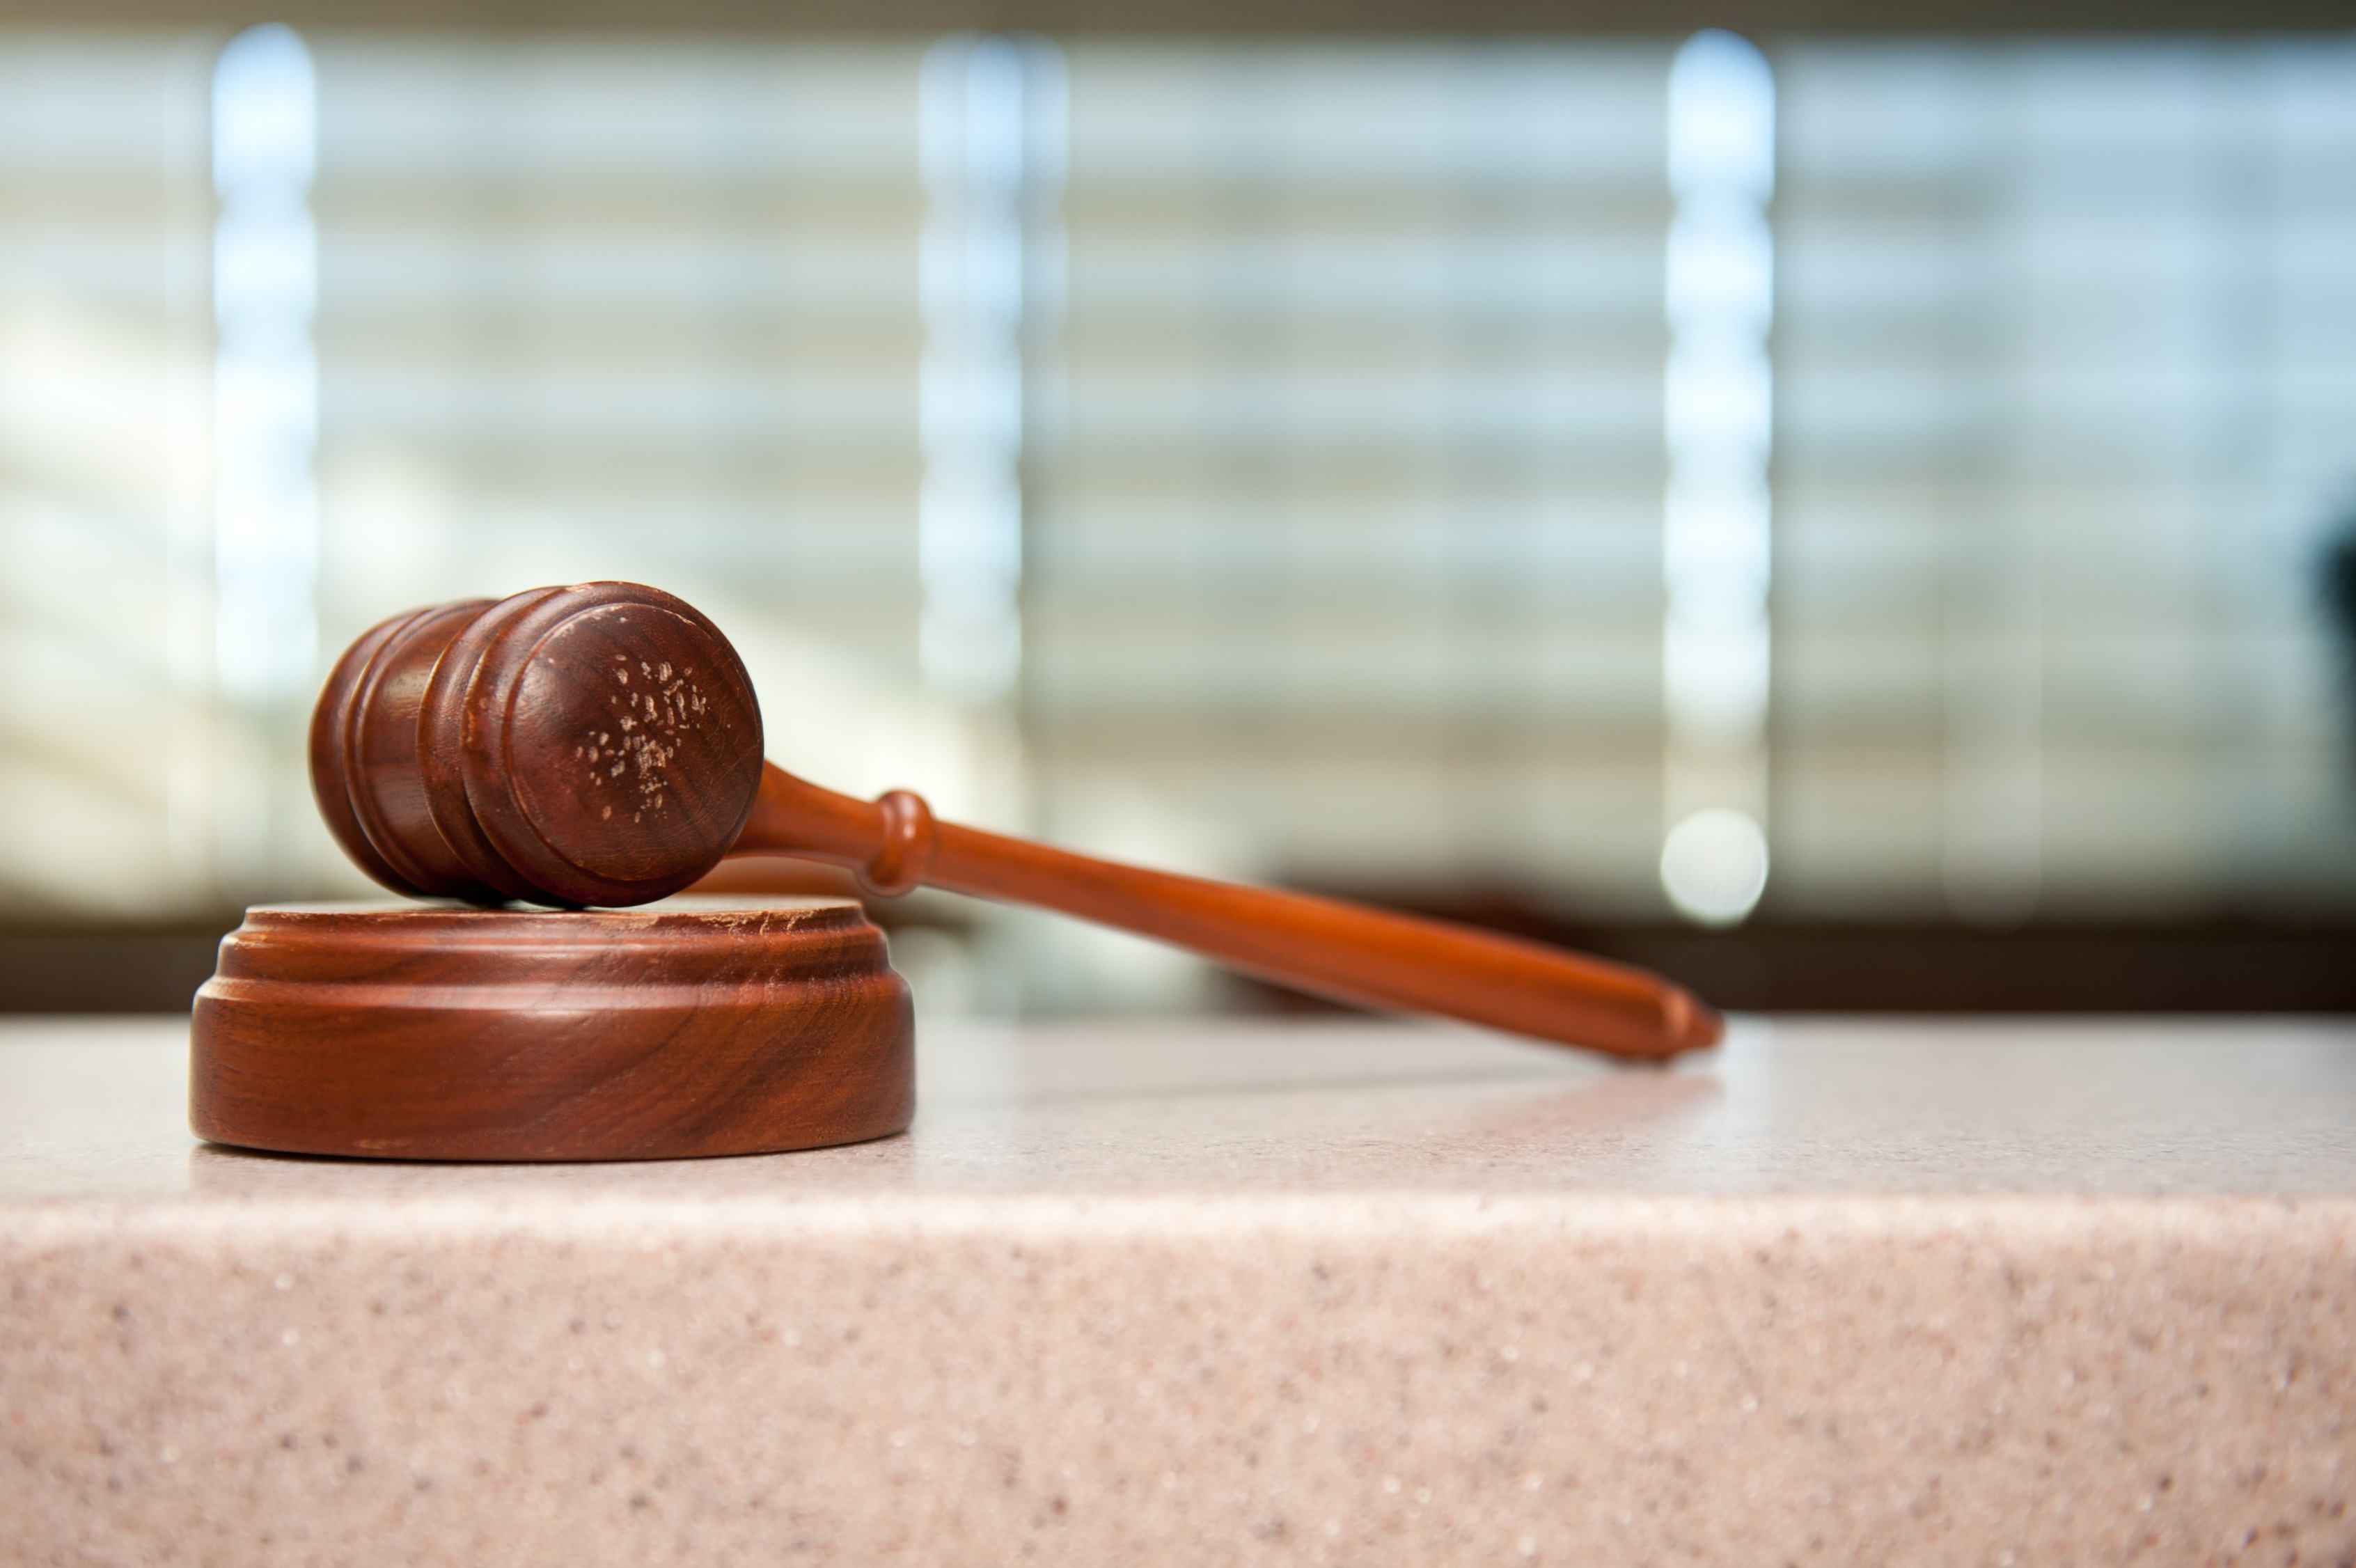 Calgary Legal Guidance sees a rise in the need for free